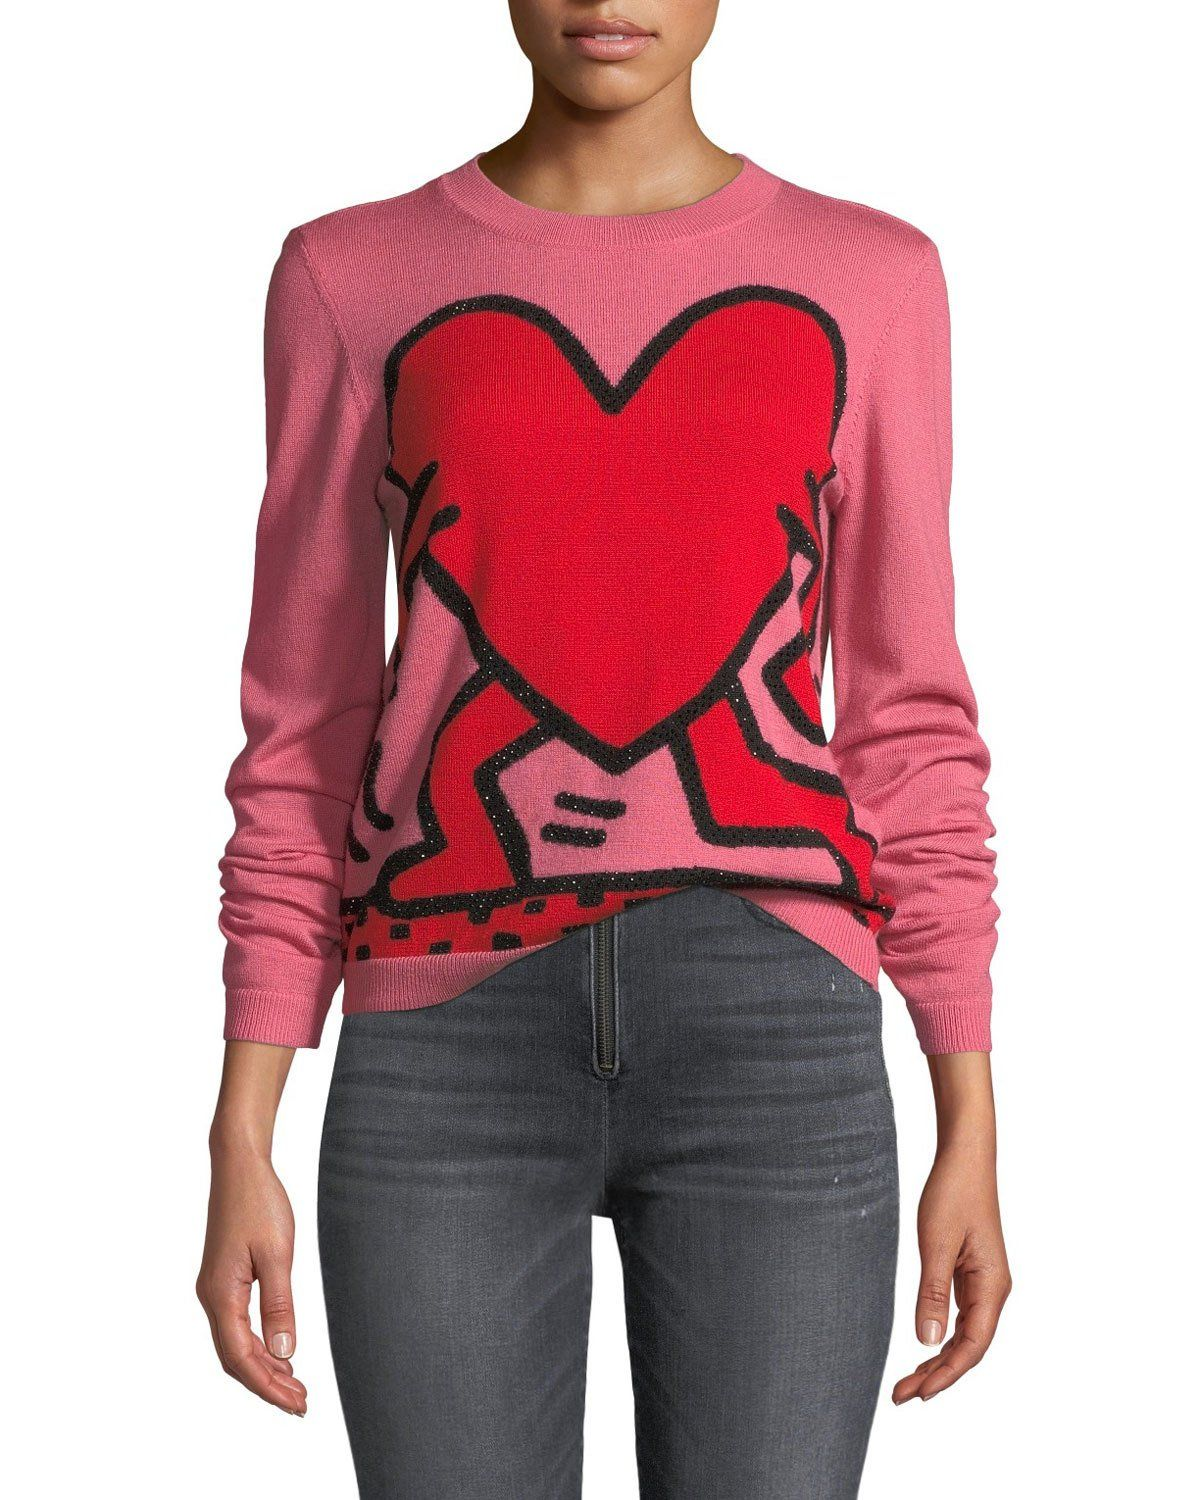 Pullover Haring Alice Olivia Chia Relaxed Crewneck X Intarsia Sweater Keith RROtZ8qx